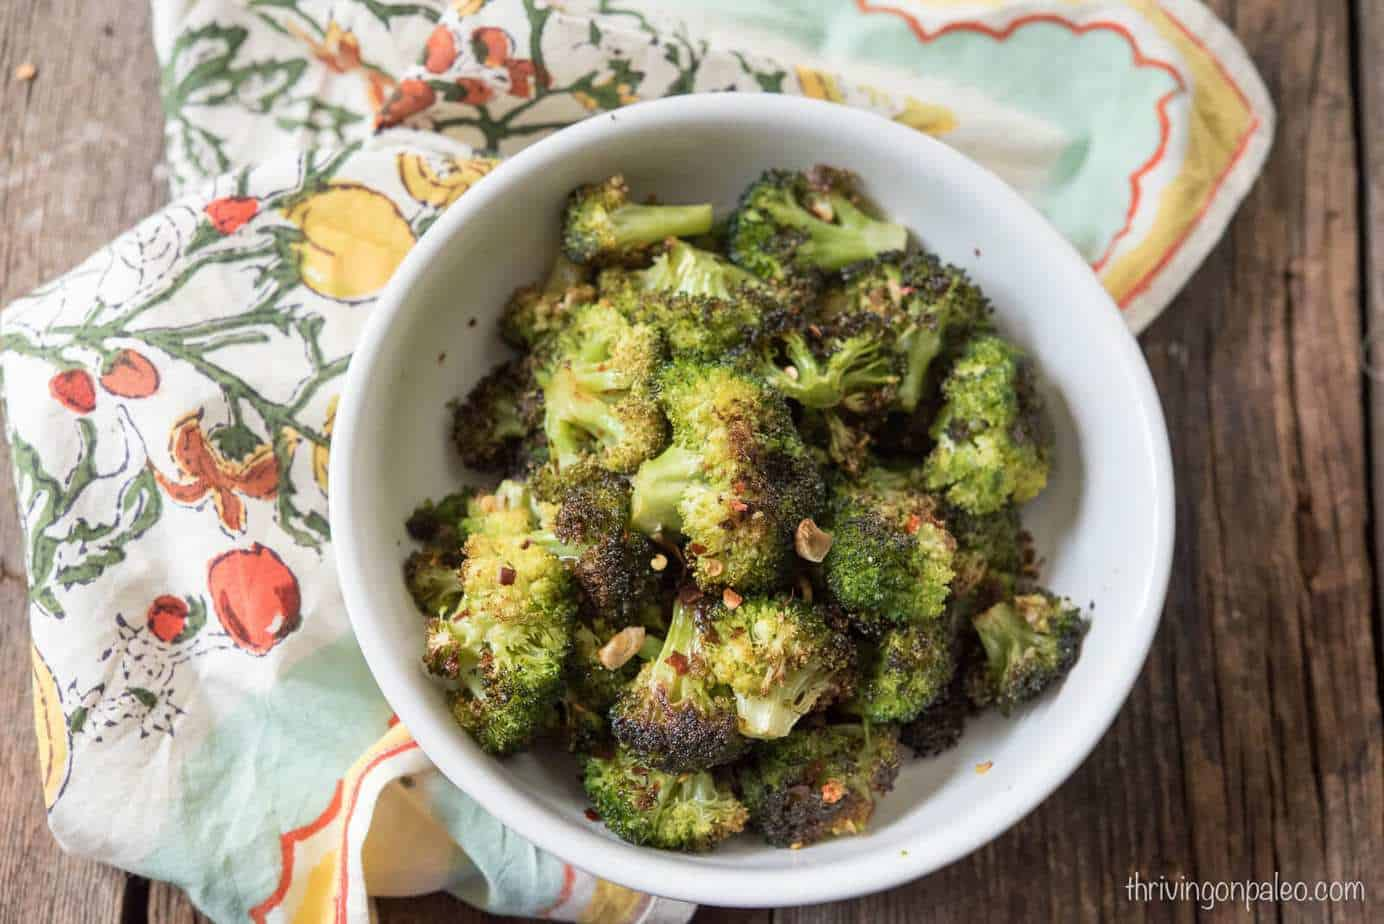 Roasted Broccoli - a recipe for a quick and easy Paleo and gluten-free side dish